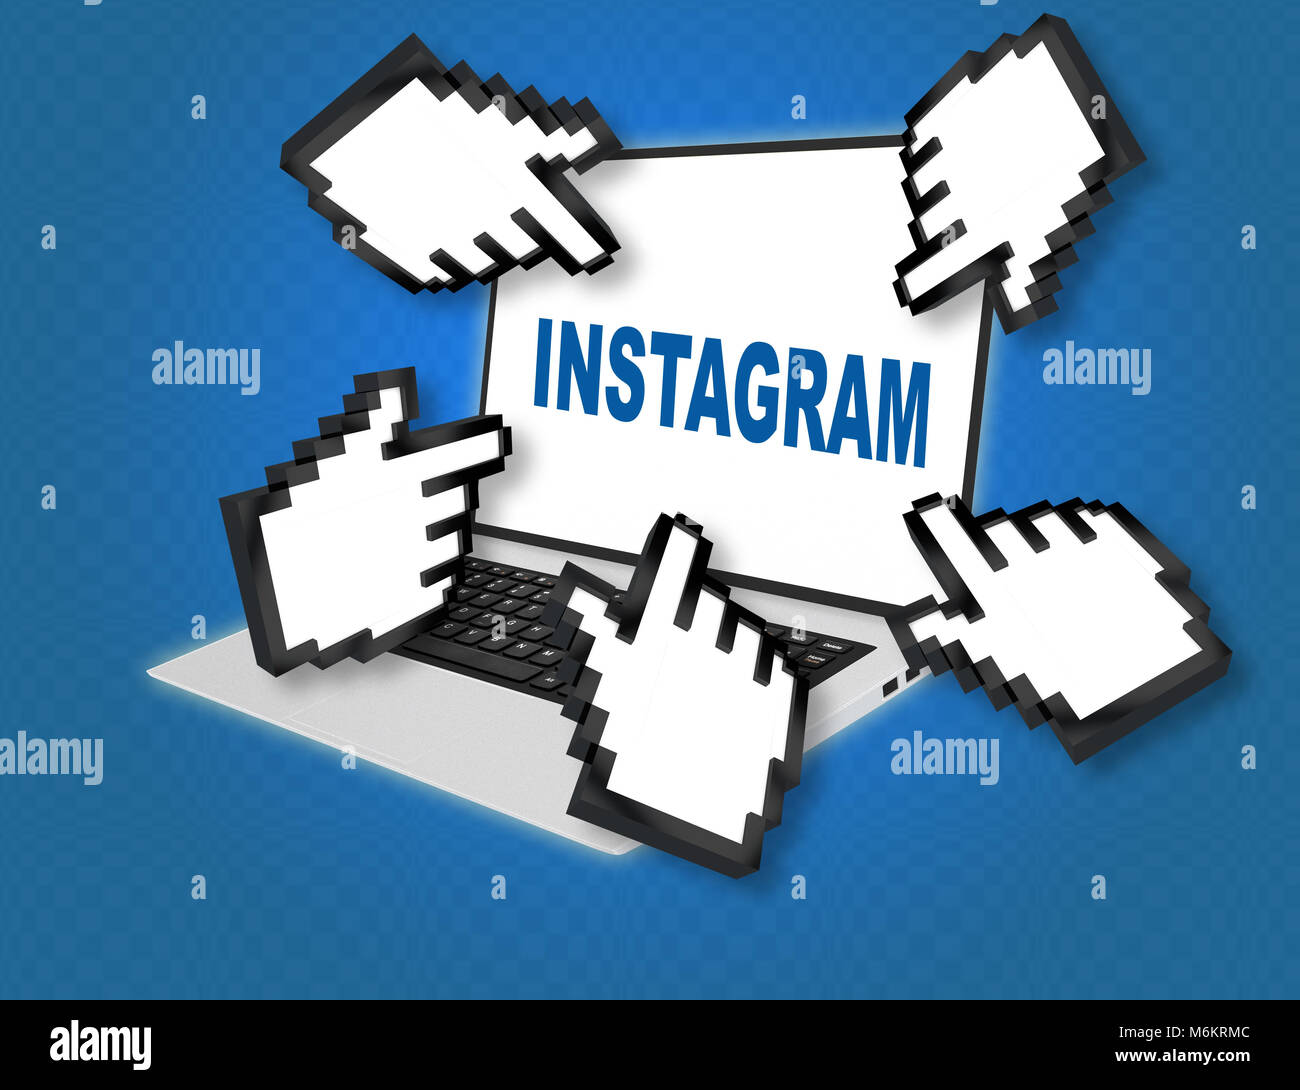 3D illustration of INSTAGRAM script with pointing hand icons